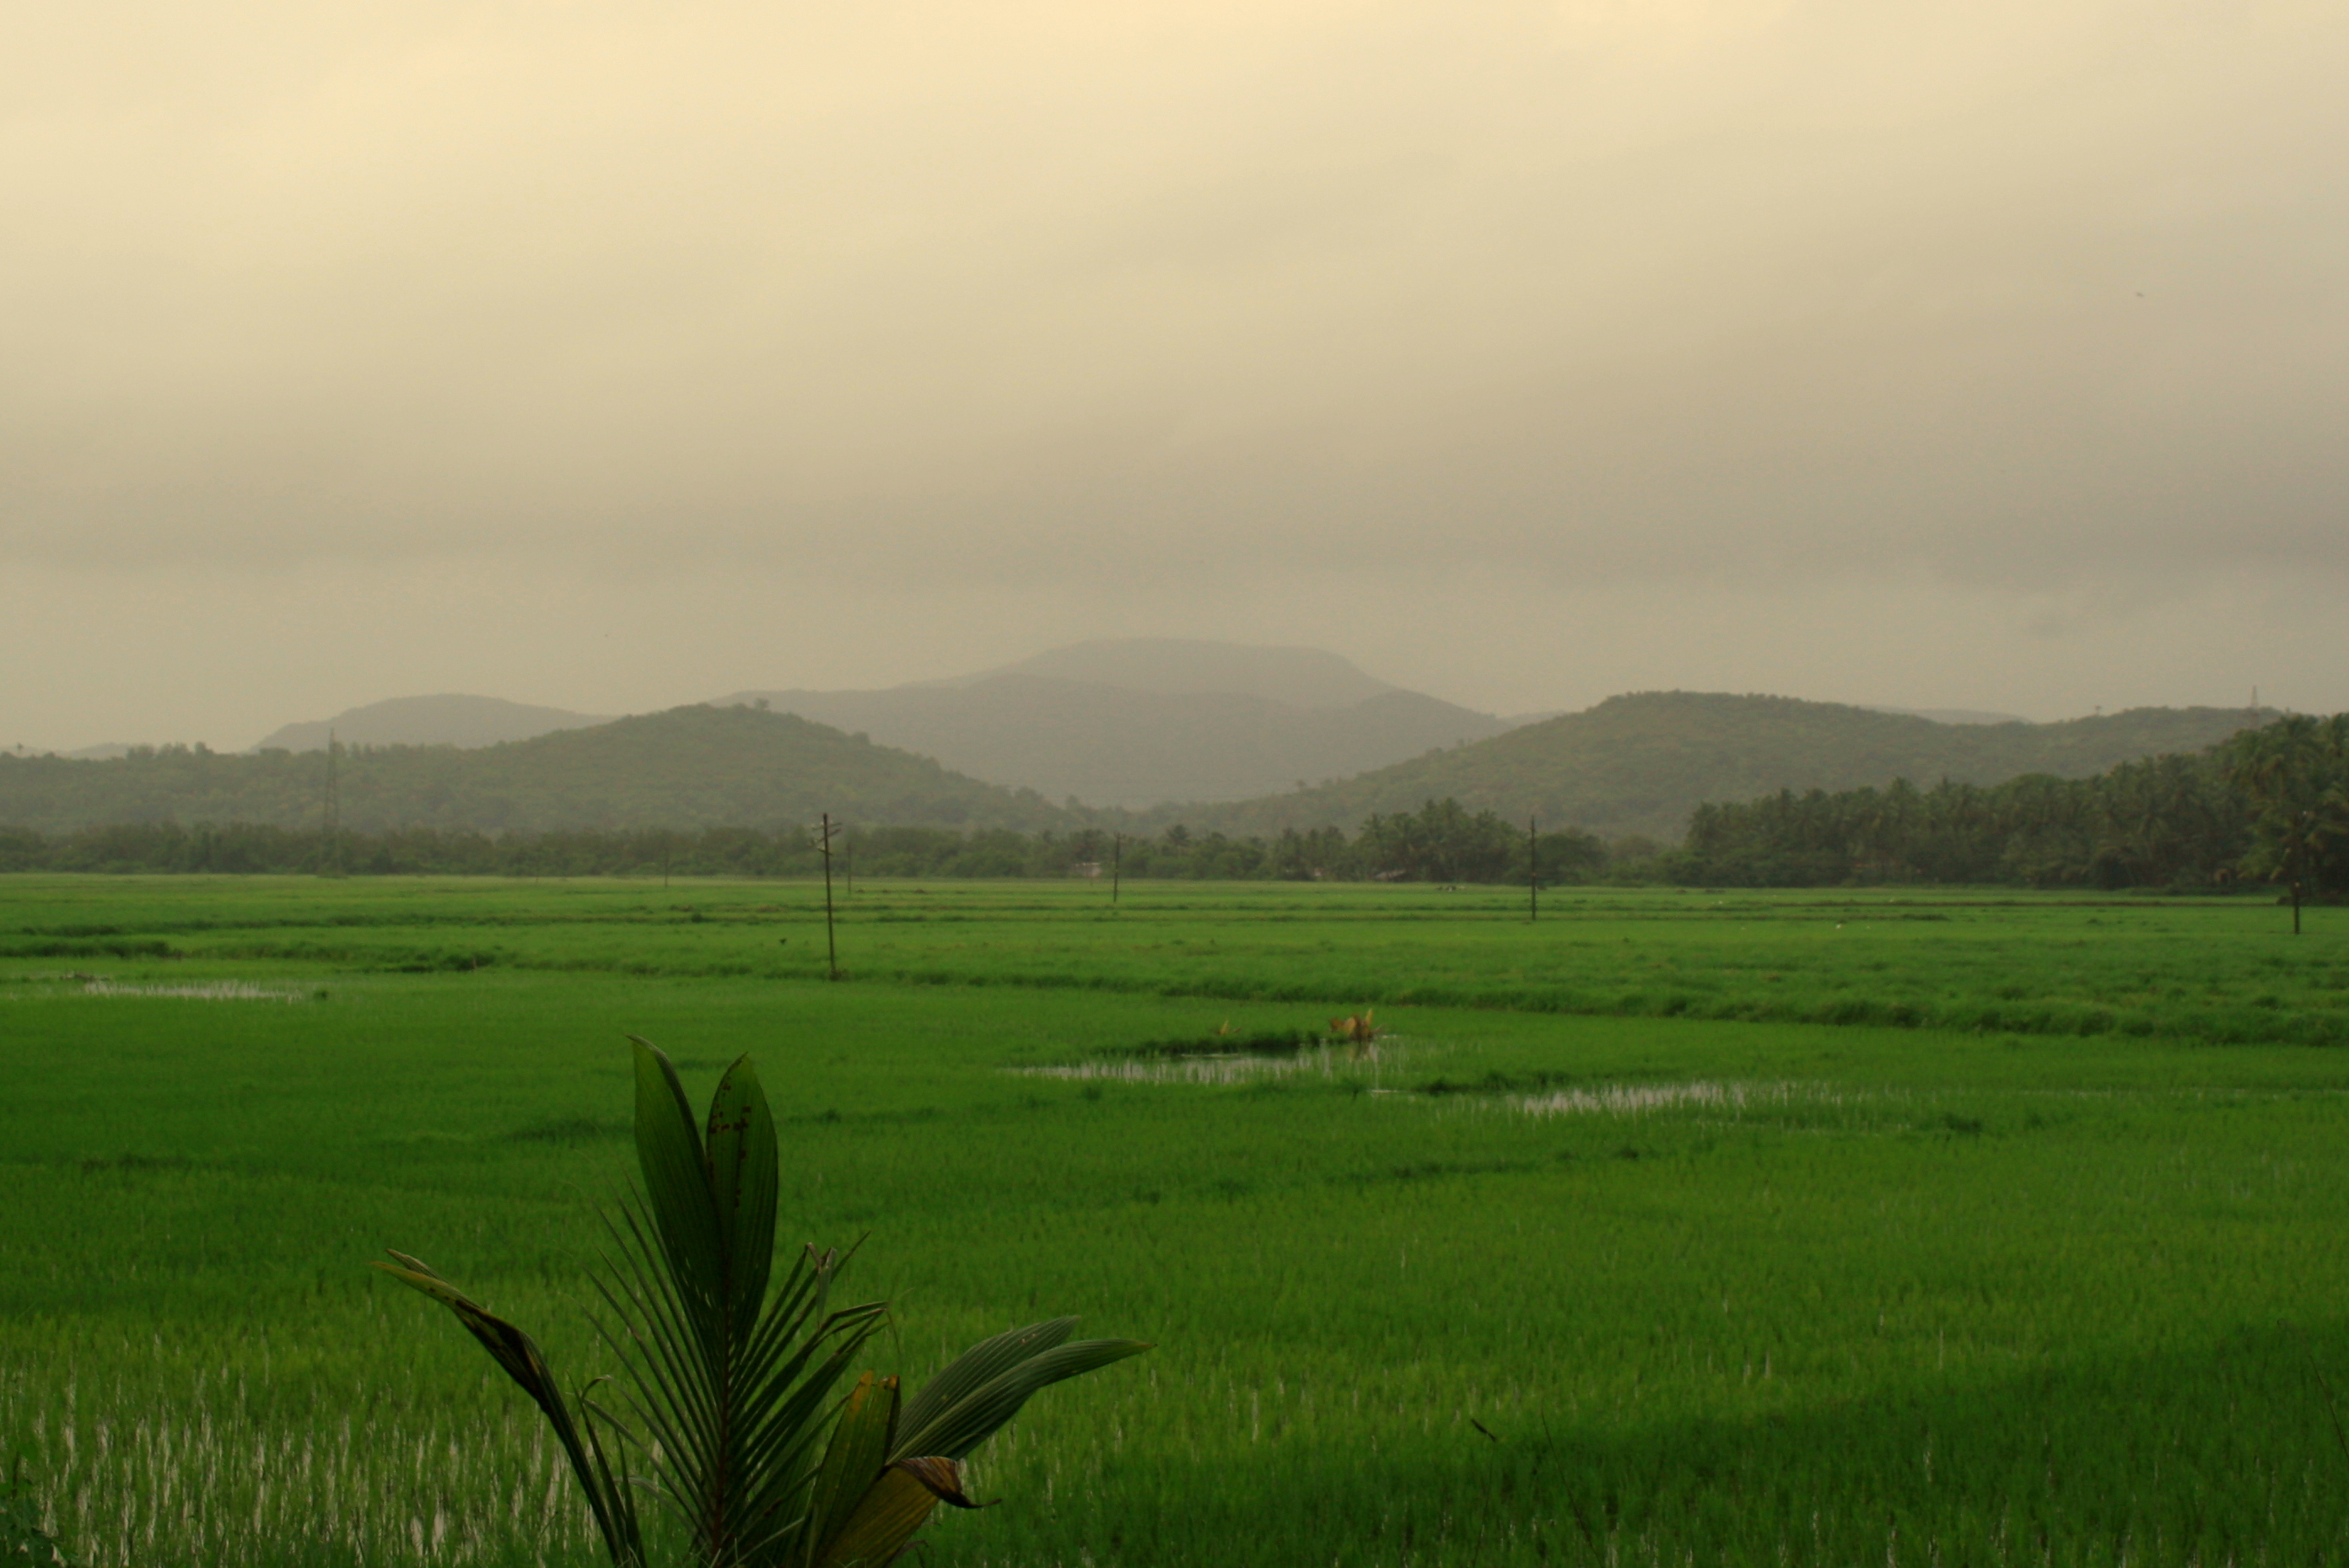 agriculture in goa Goa / o / ( the soil is rich in minerals and humus, thus conducive to agriculture some of the oldest rocks in the indian subcontinent are found in goa between molem and anmod on goa's border with karnataka.